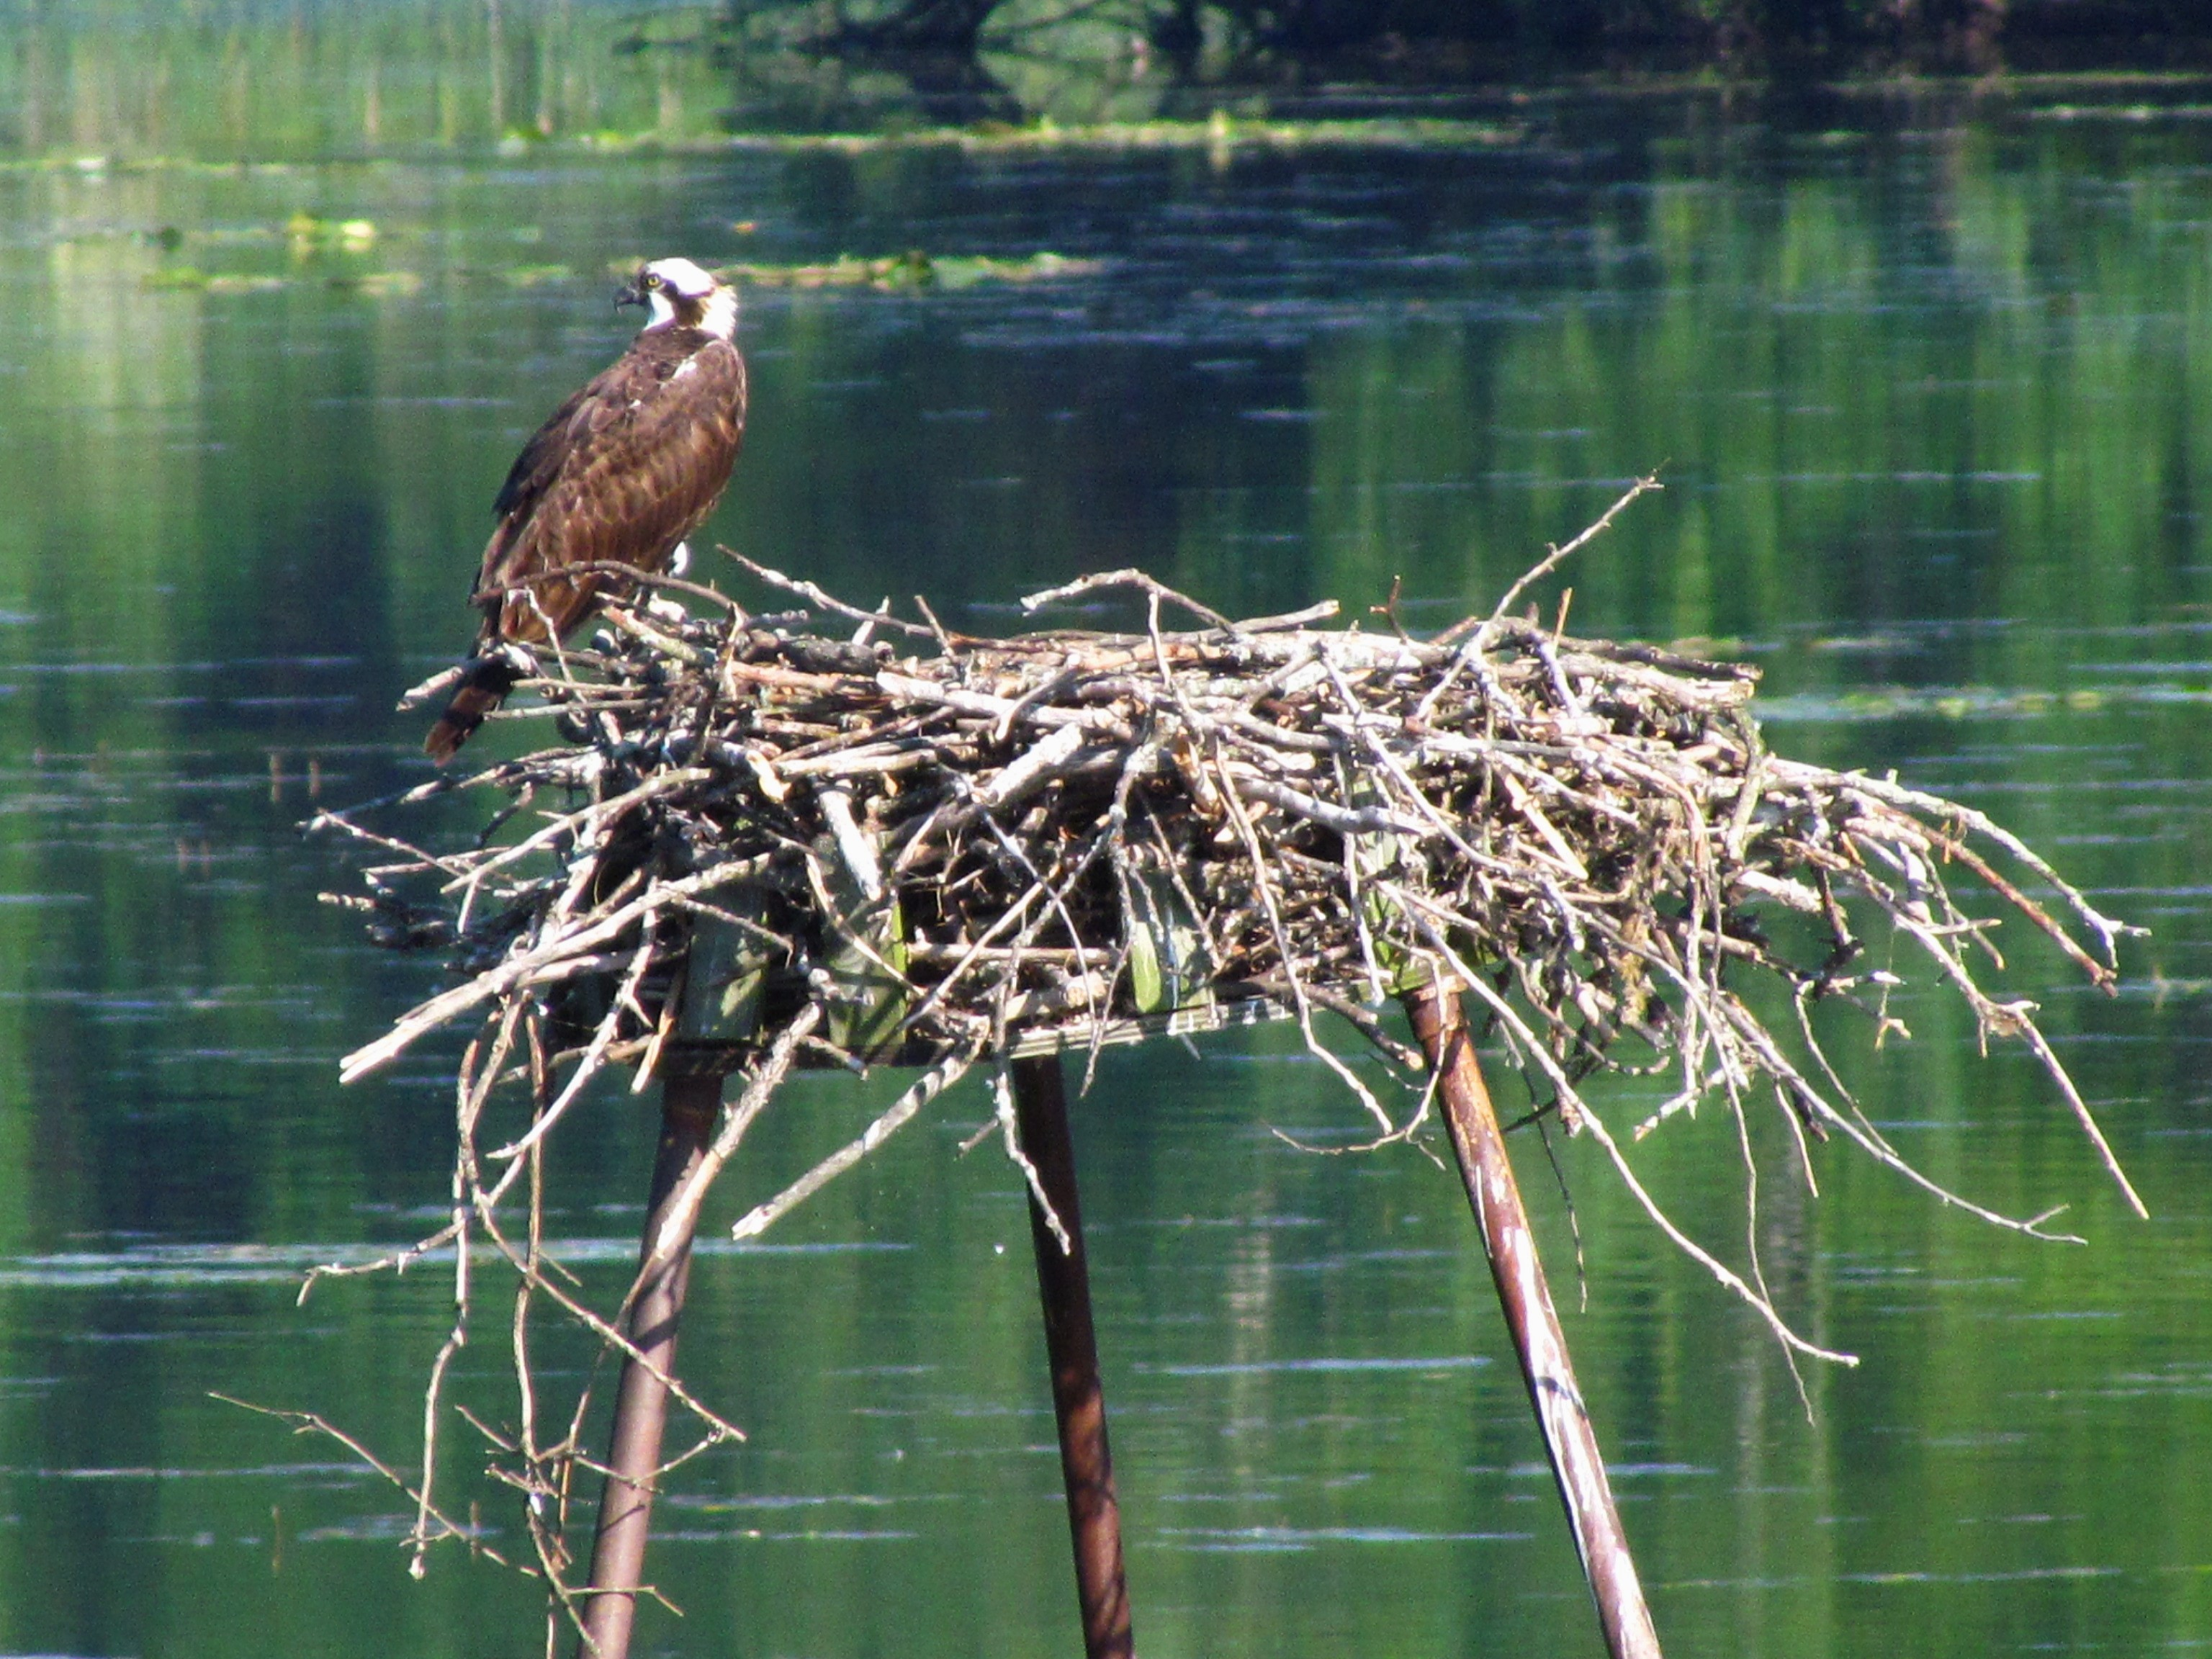 An Osprey sits on an Osprey Nesting Platform that has been covered in twigs and branches. A body of water can be seen in the background.